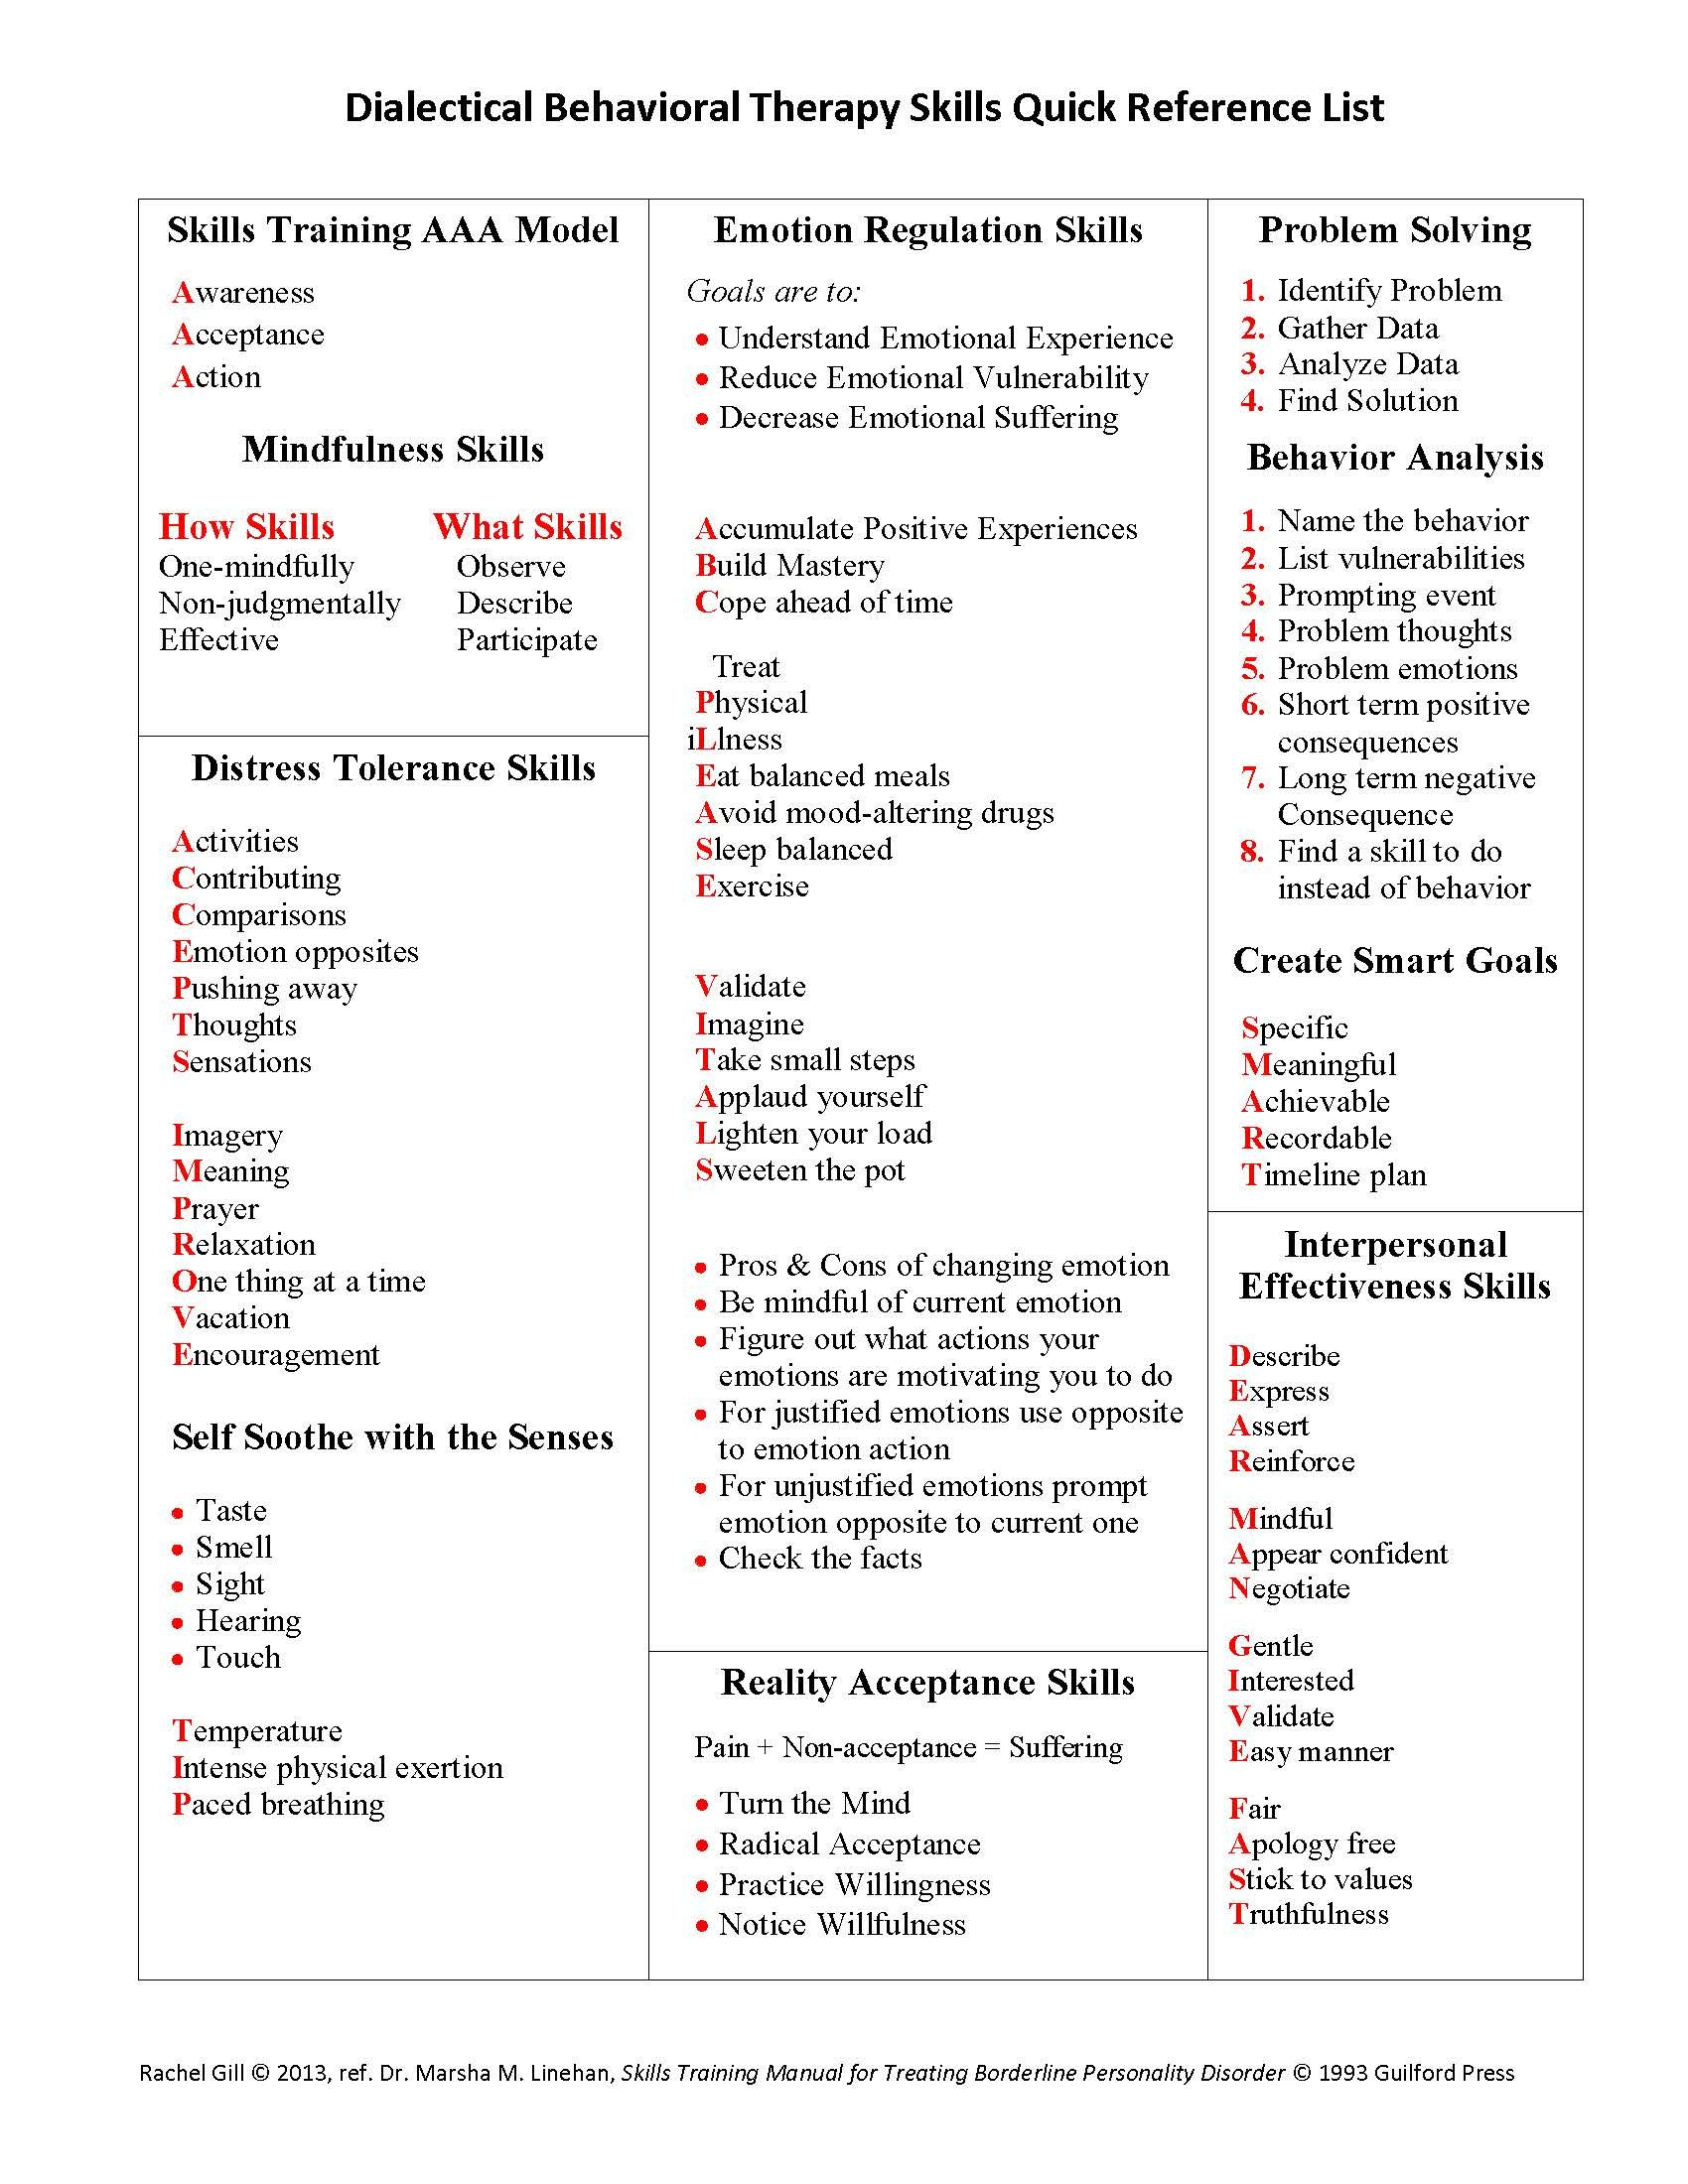 Dbt Skills Quick Reference List